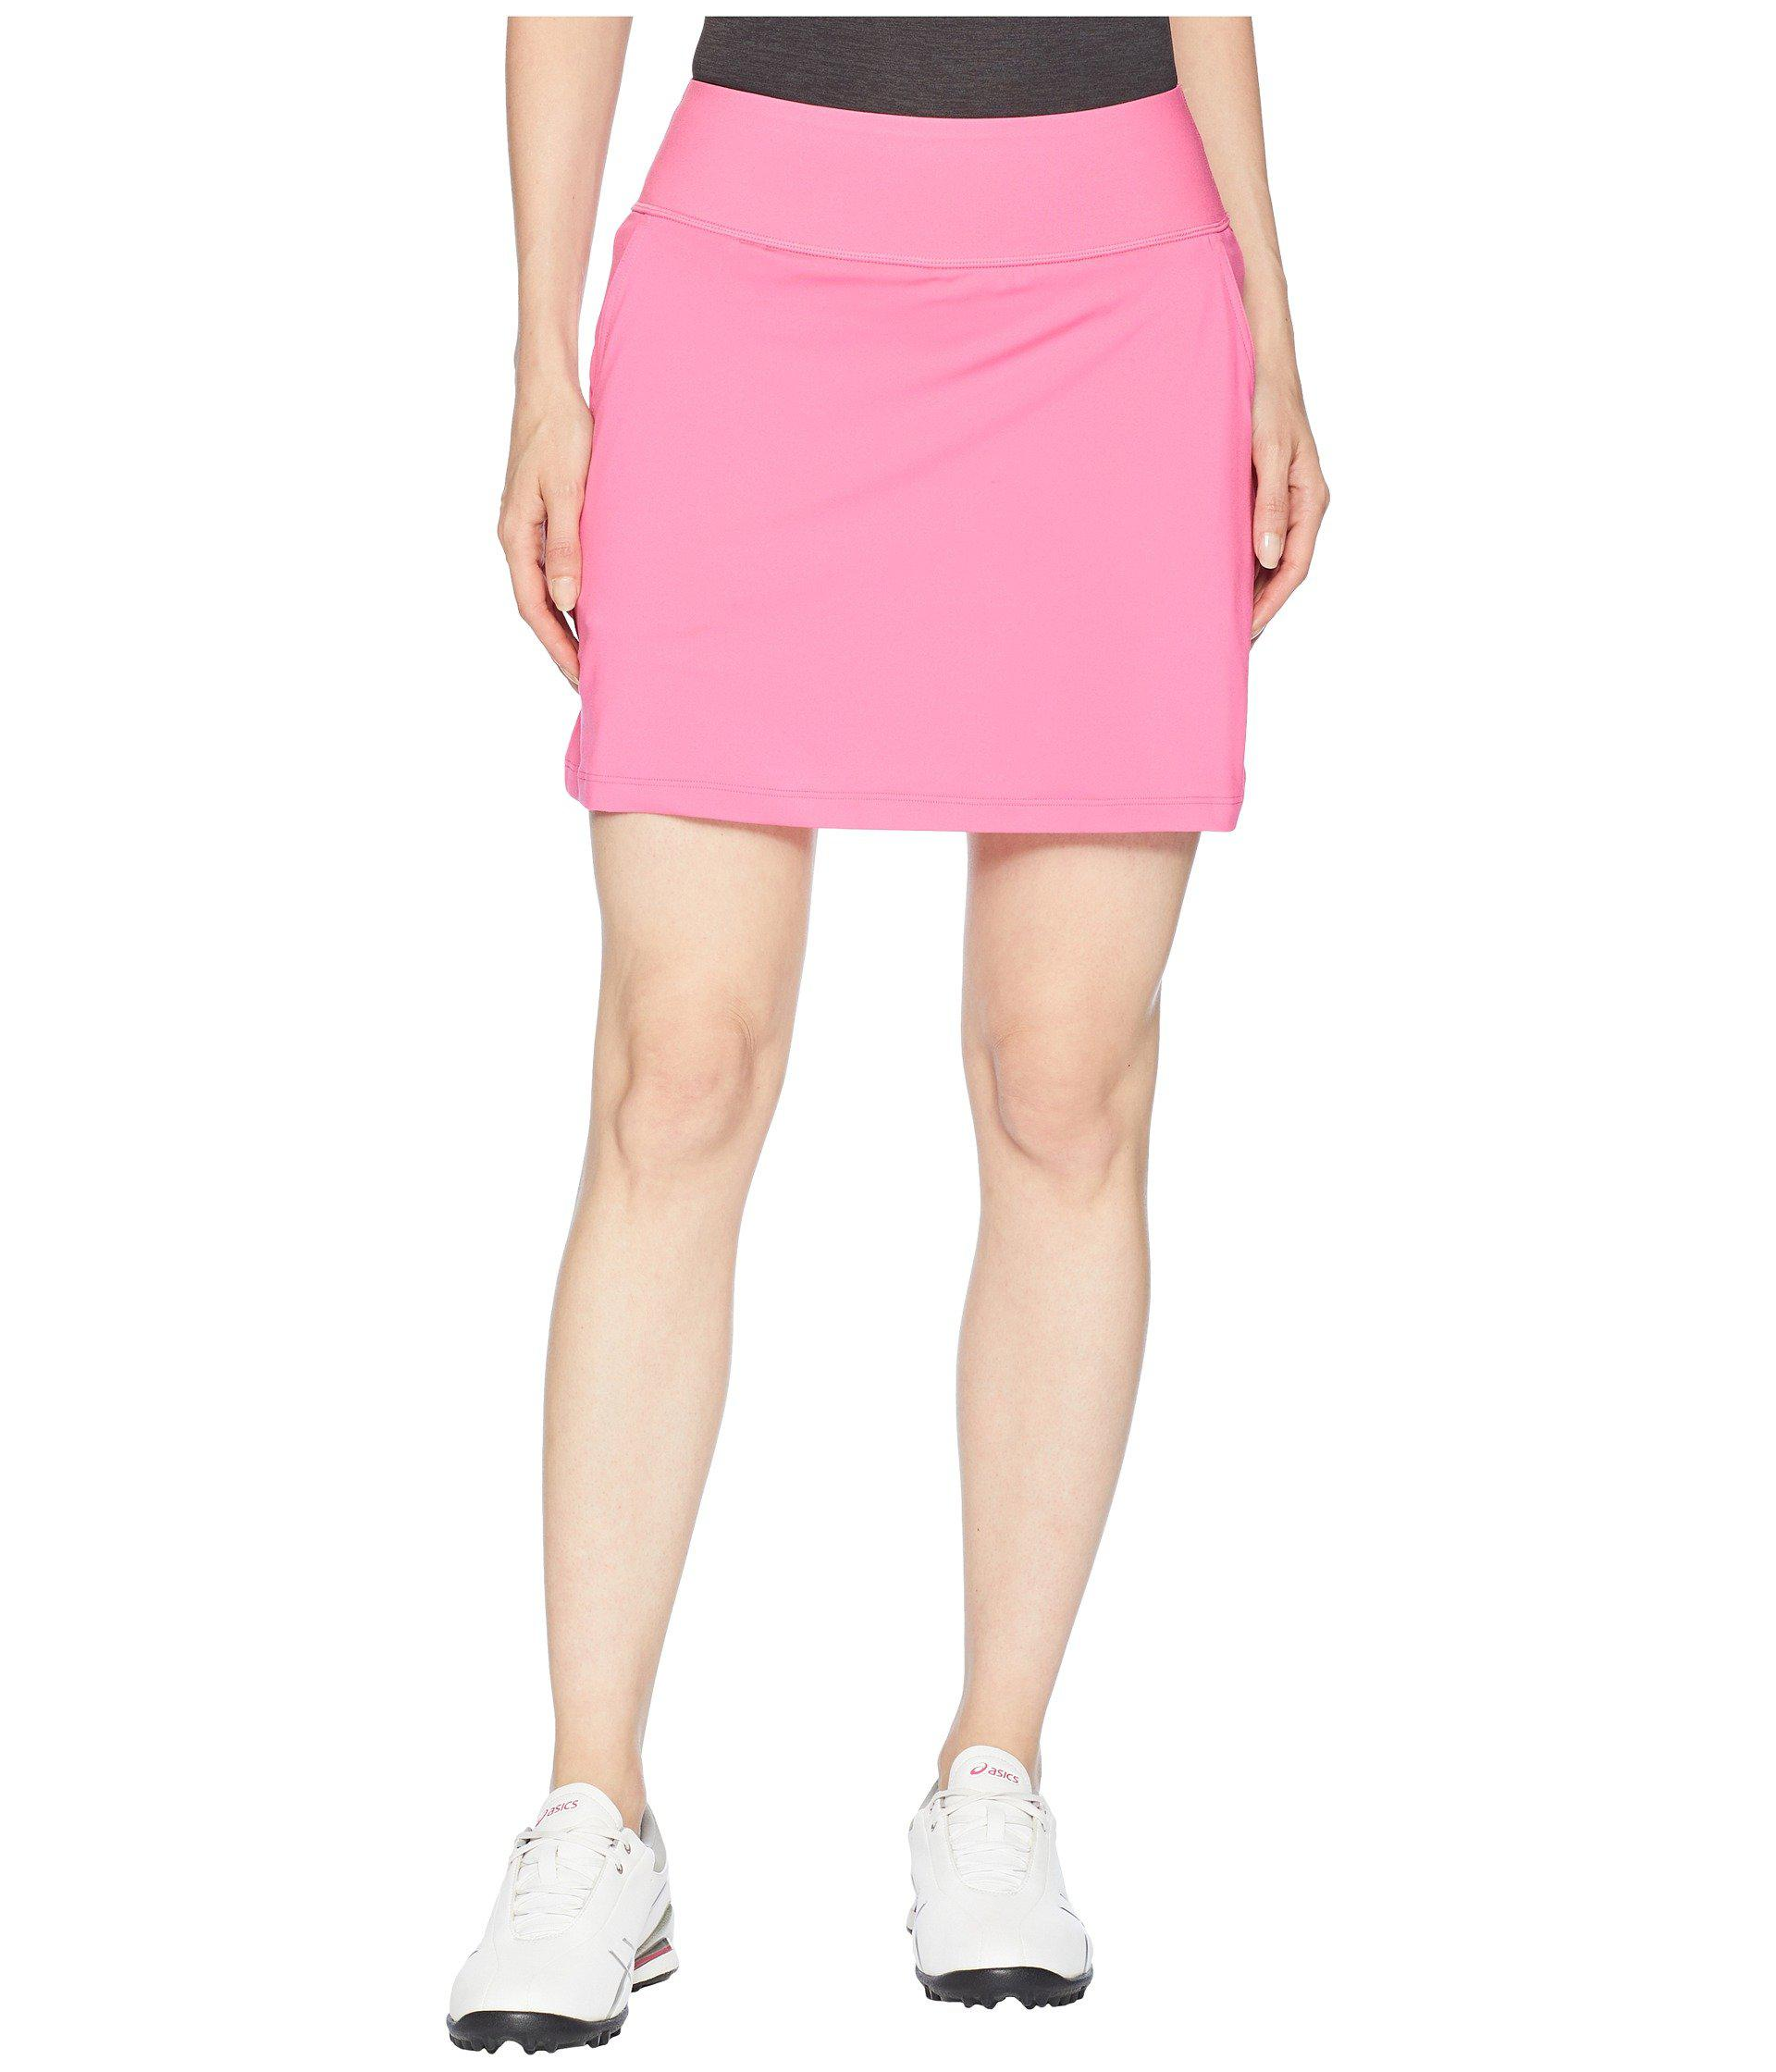 07345bc15 Lyst - PUMA Pwrshape Solid Knit Skirt in Pink - Save 36%